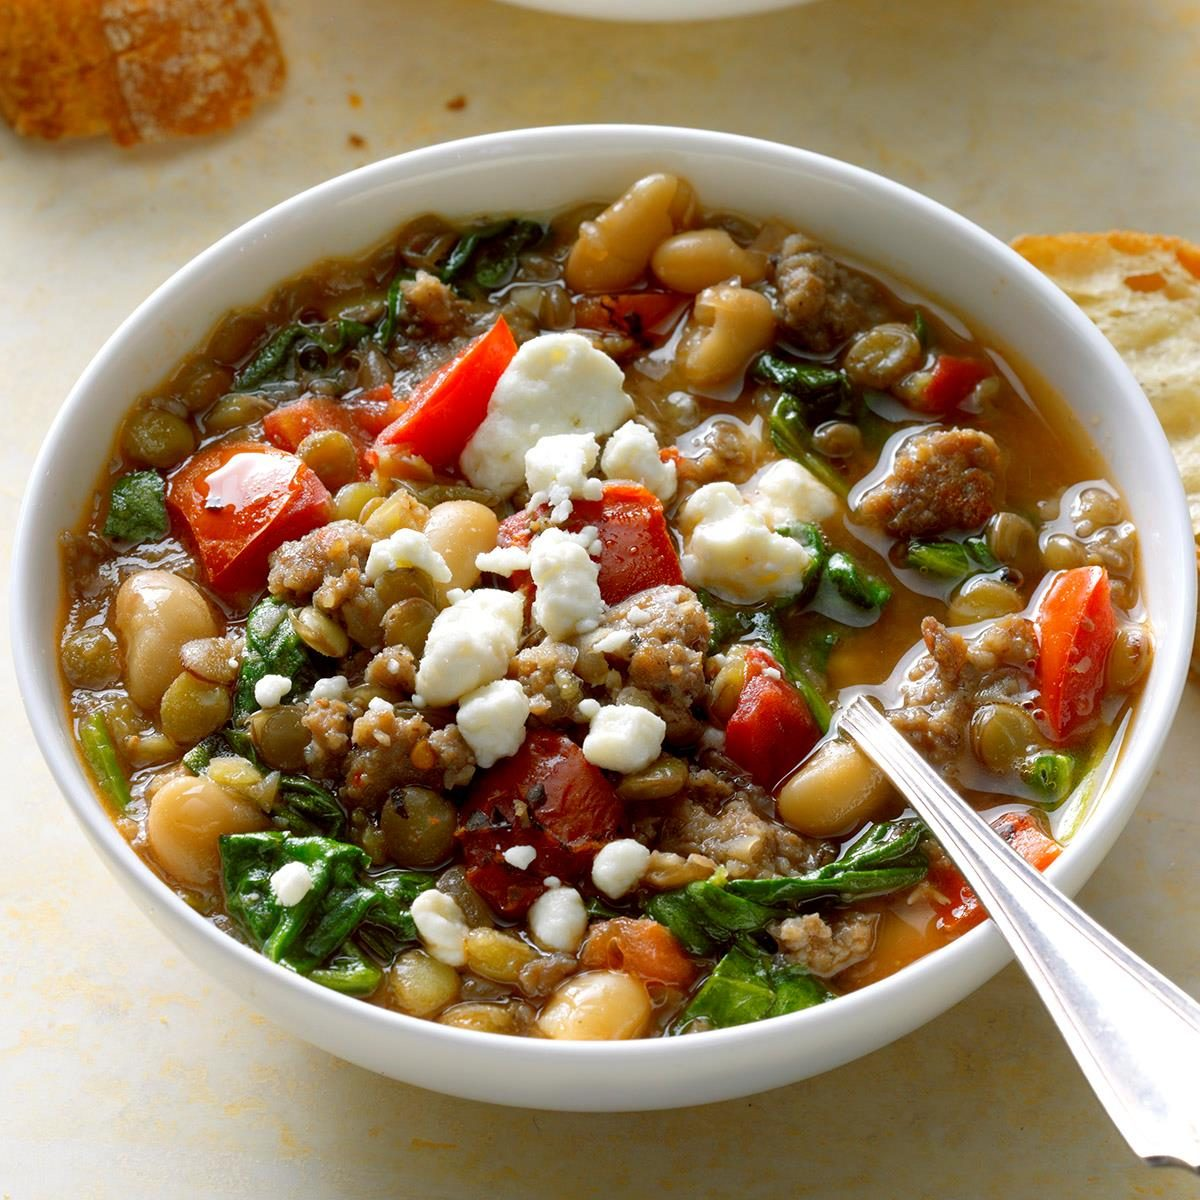 Wednesday: Spinach and Sausage Lentil Soup